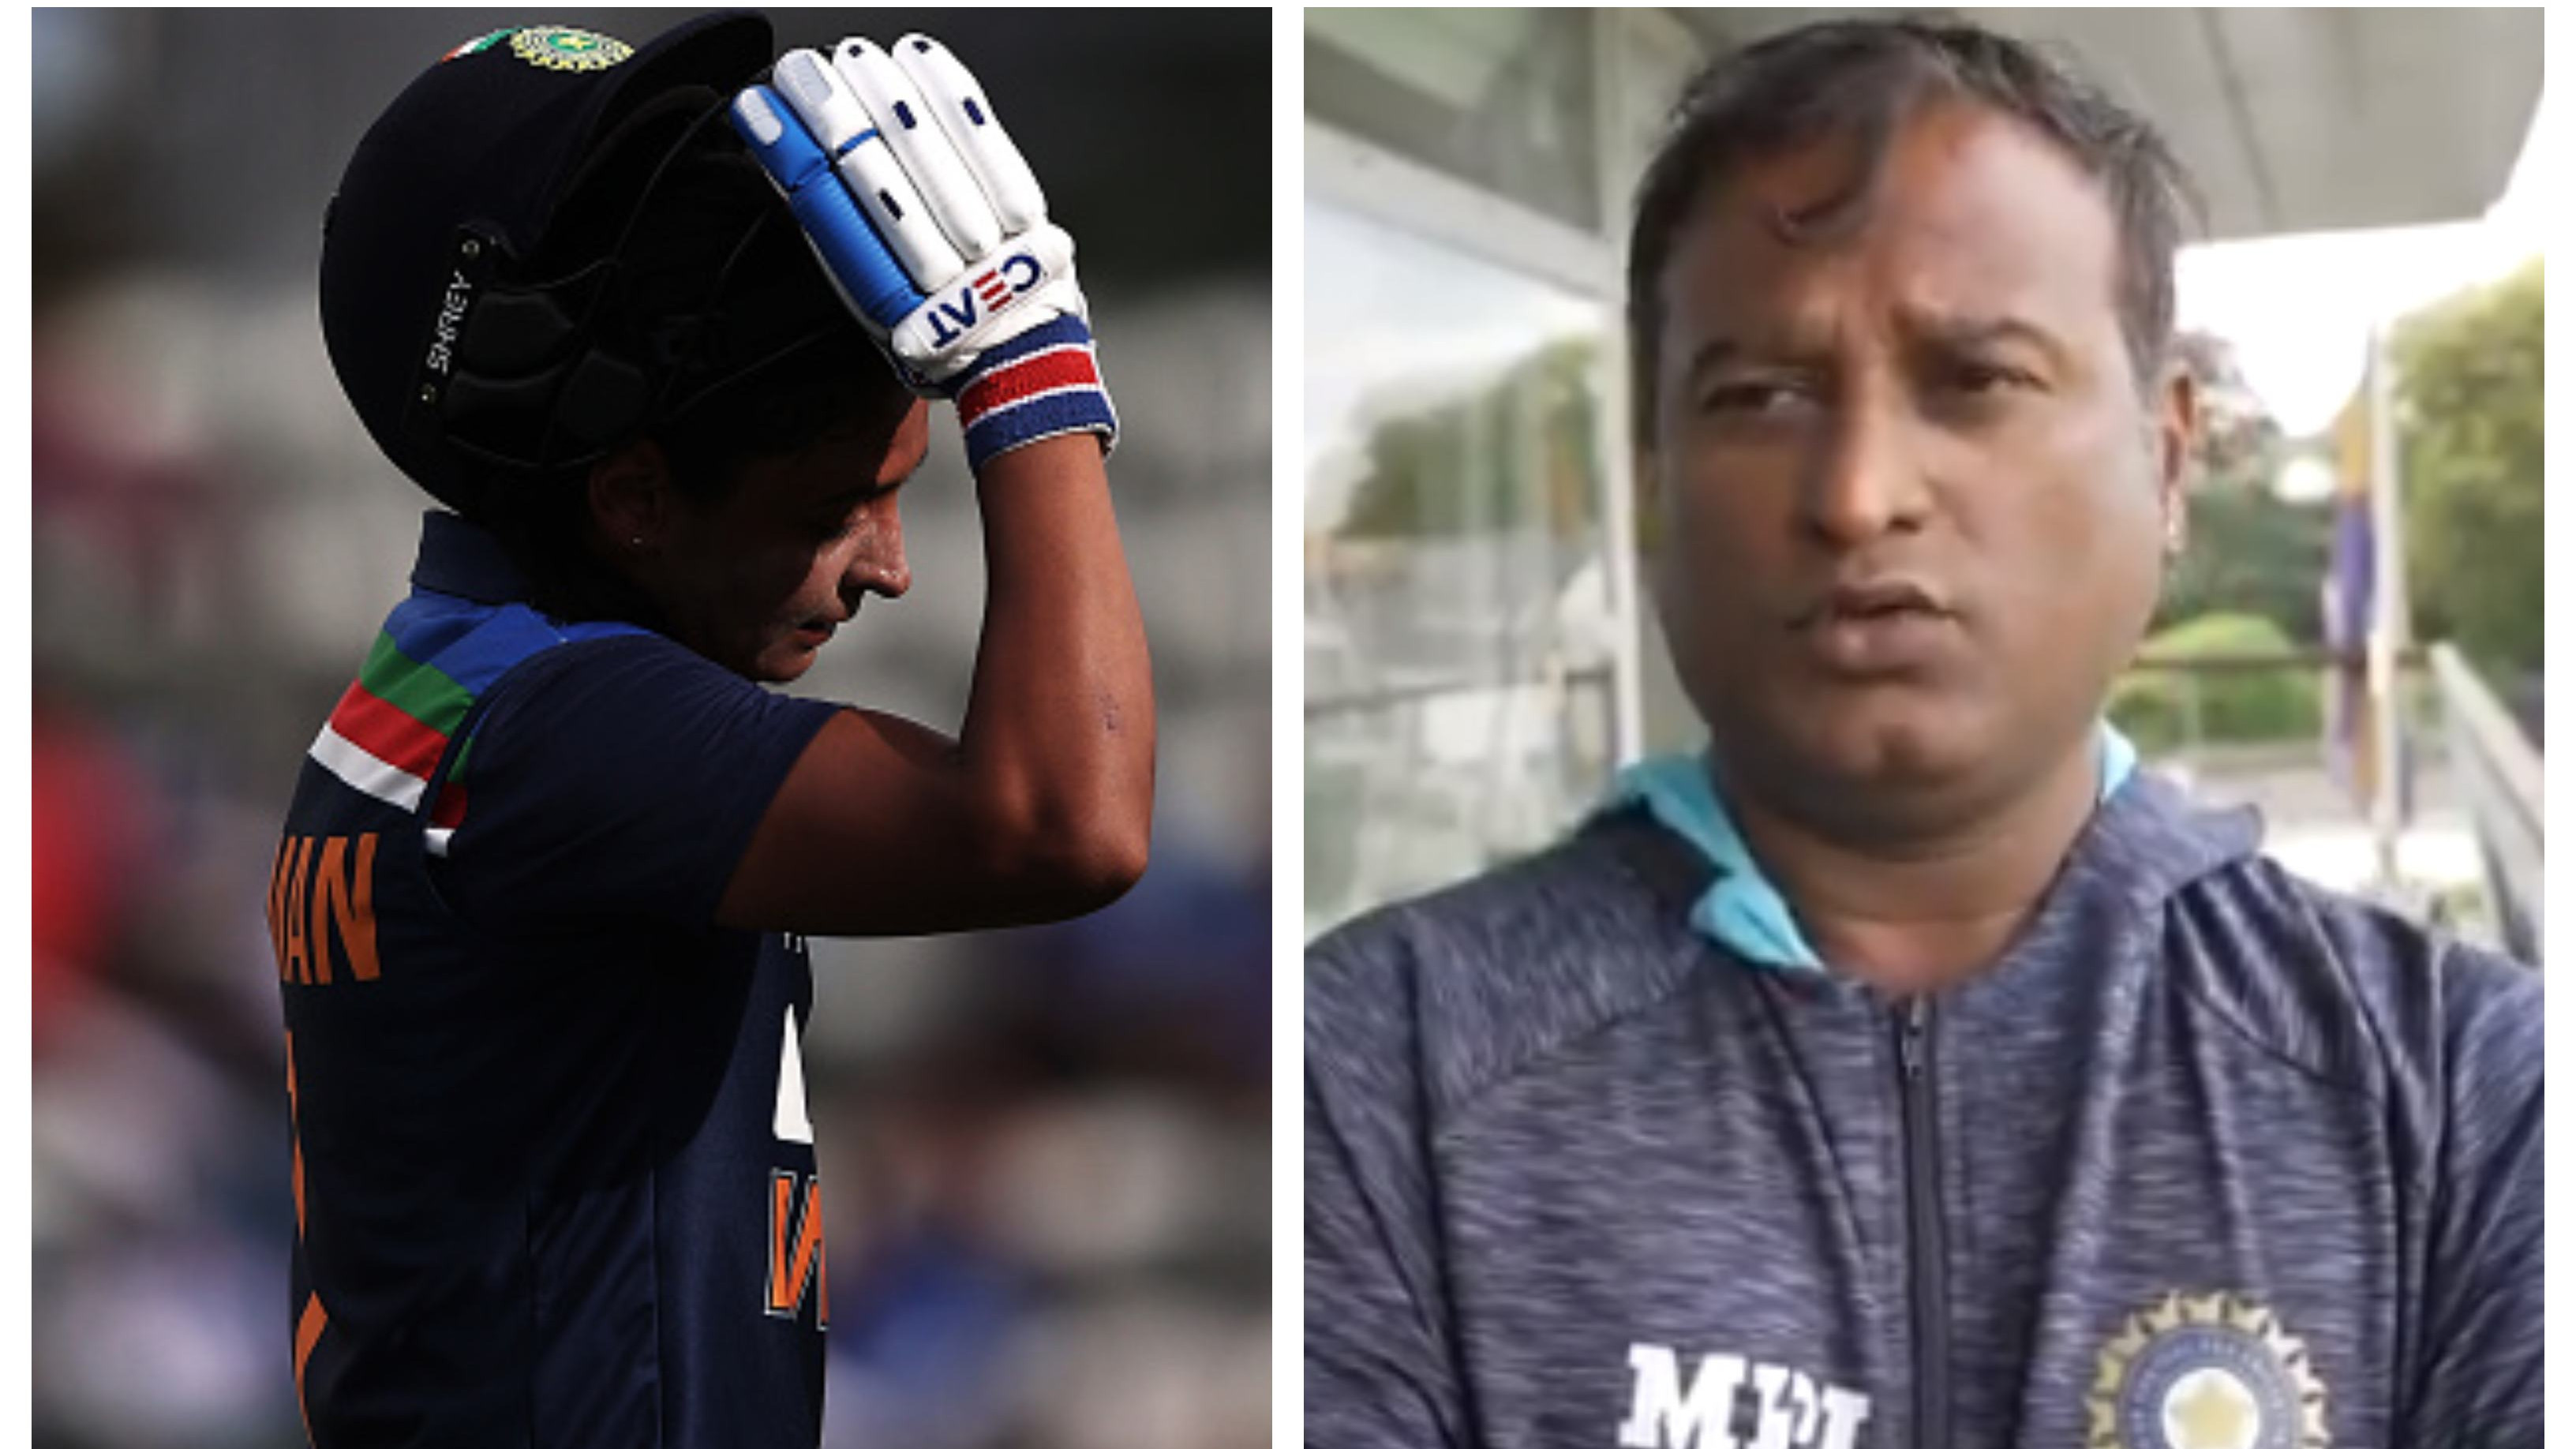 ENGW v INDW 2021: 'Batting has to be up if we are aiming at World cup', Ramesh Powar after ODI series loss